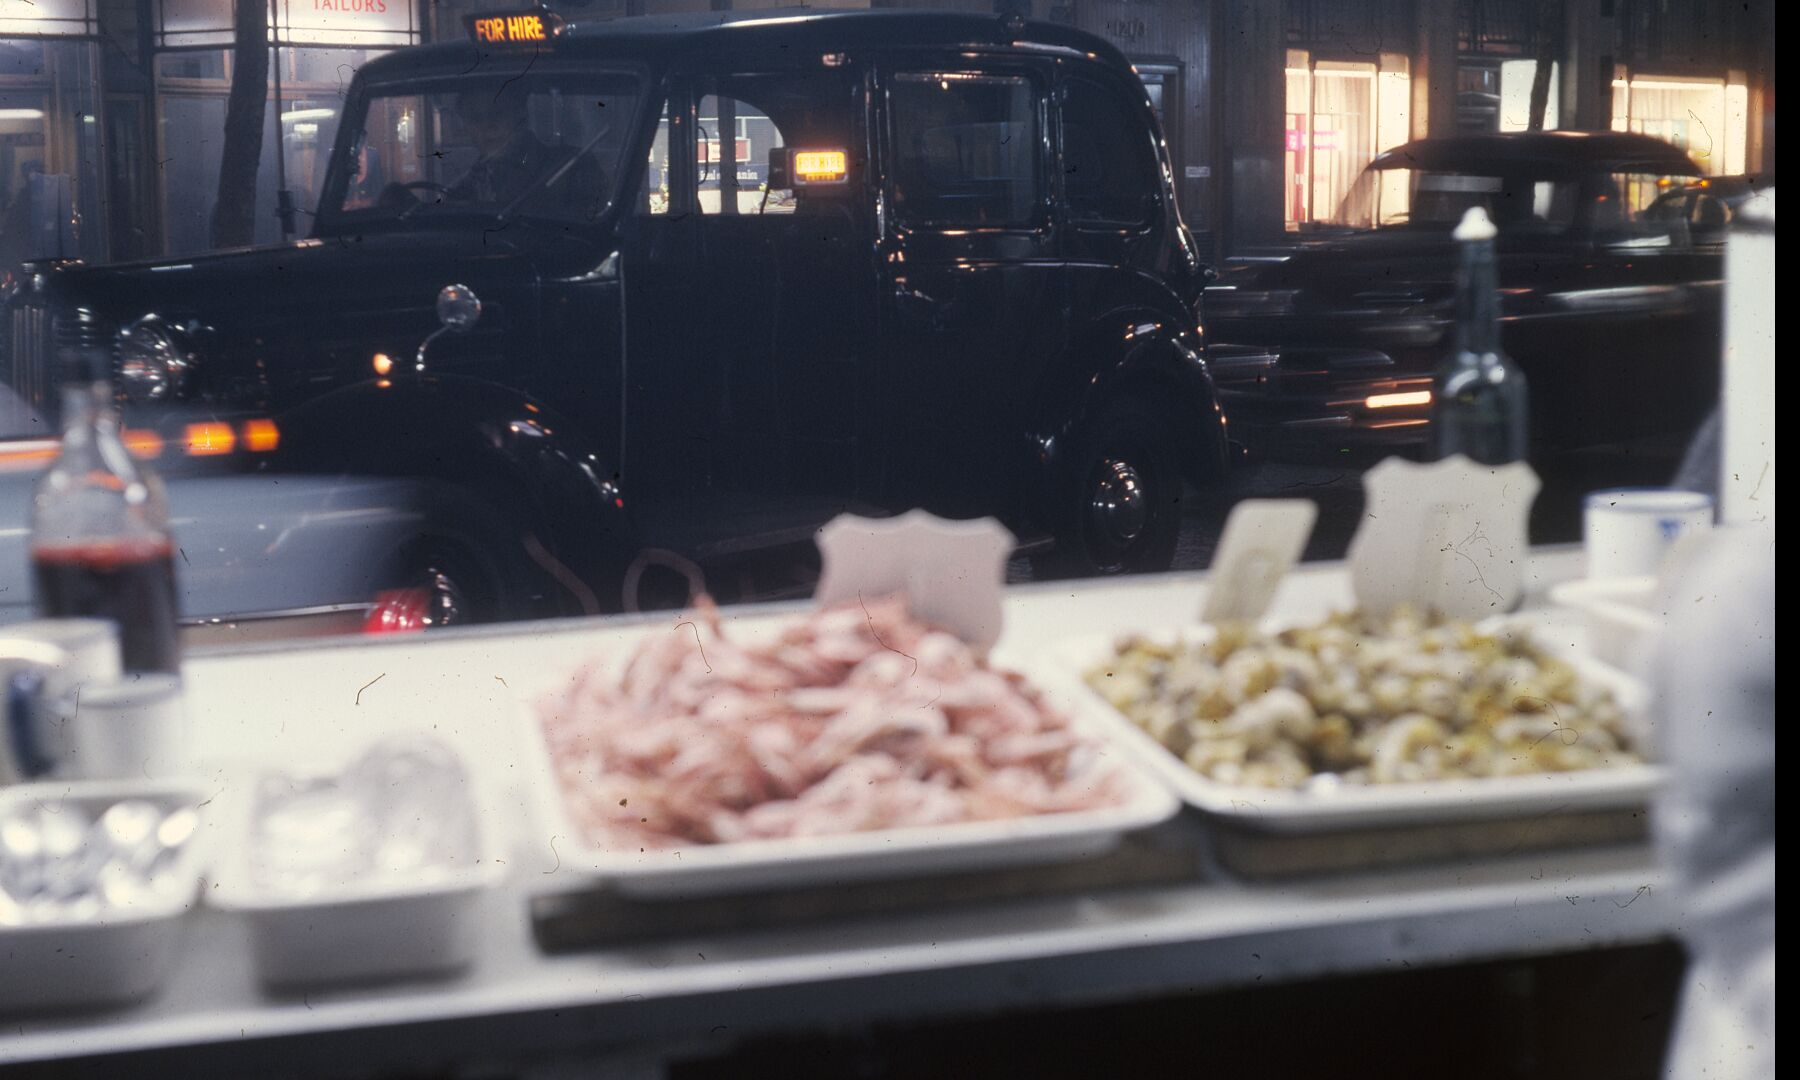 London Cabs and Seafood by Bob Hyde. Taken in the West End of London in the 1960s.